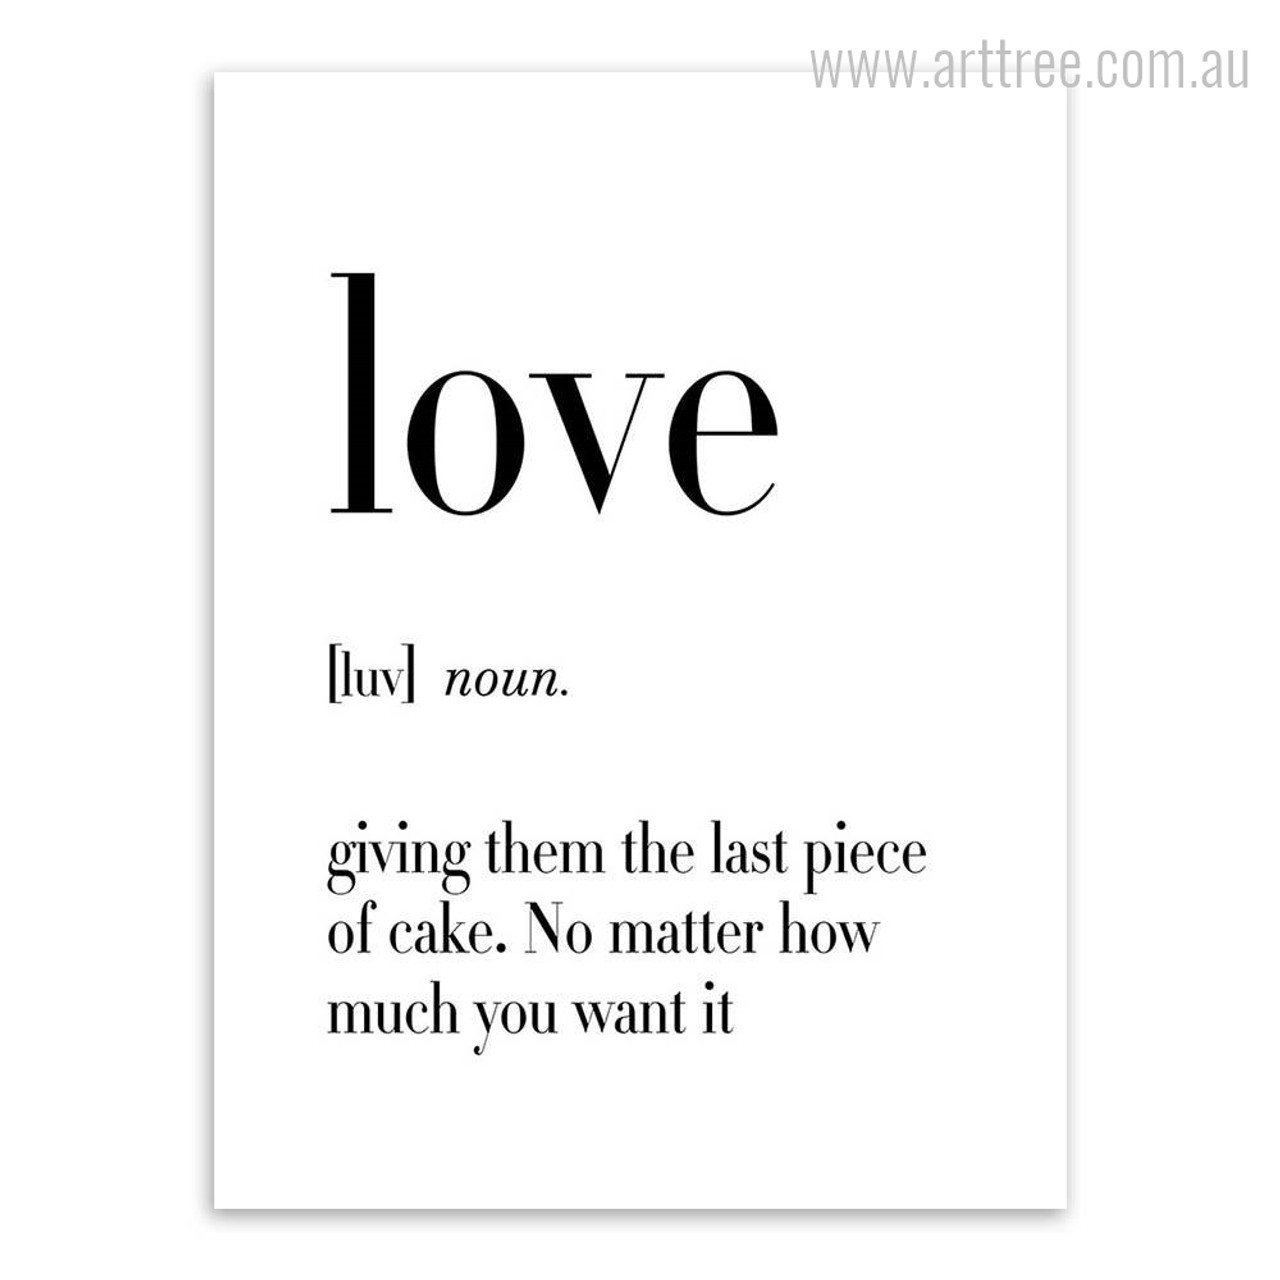 Love definition quote black and white home decor print